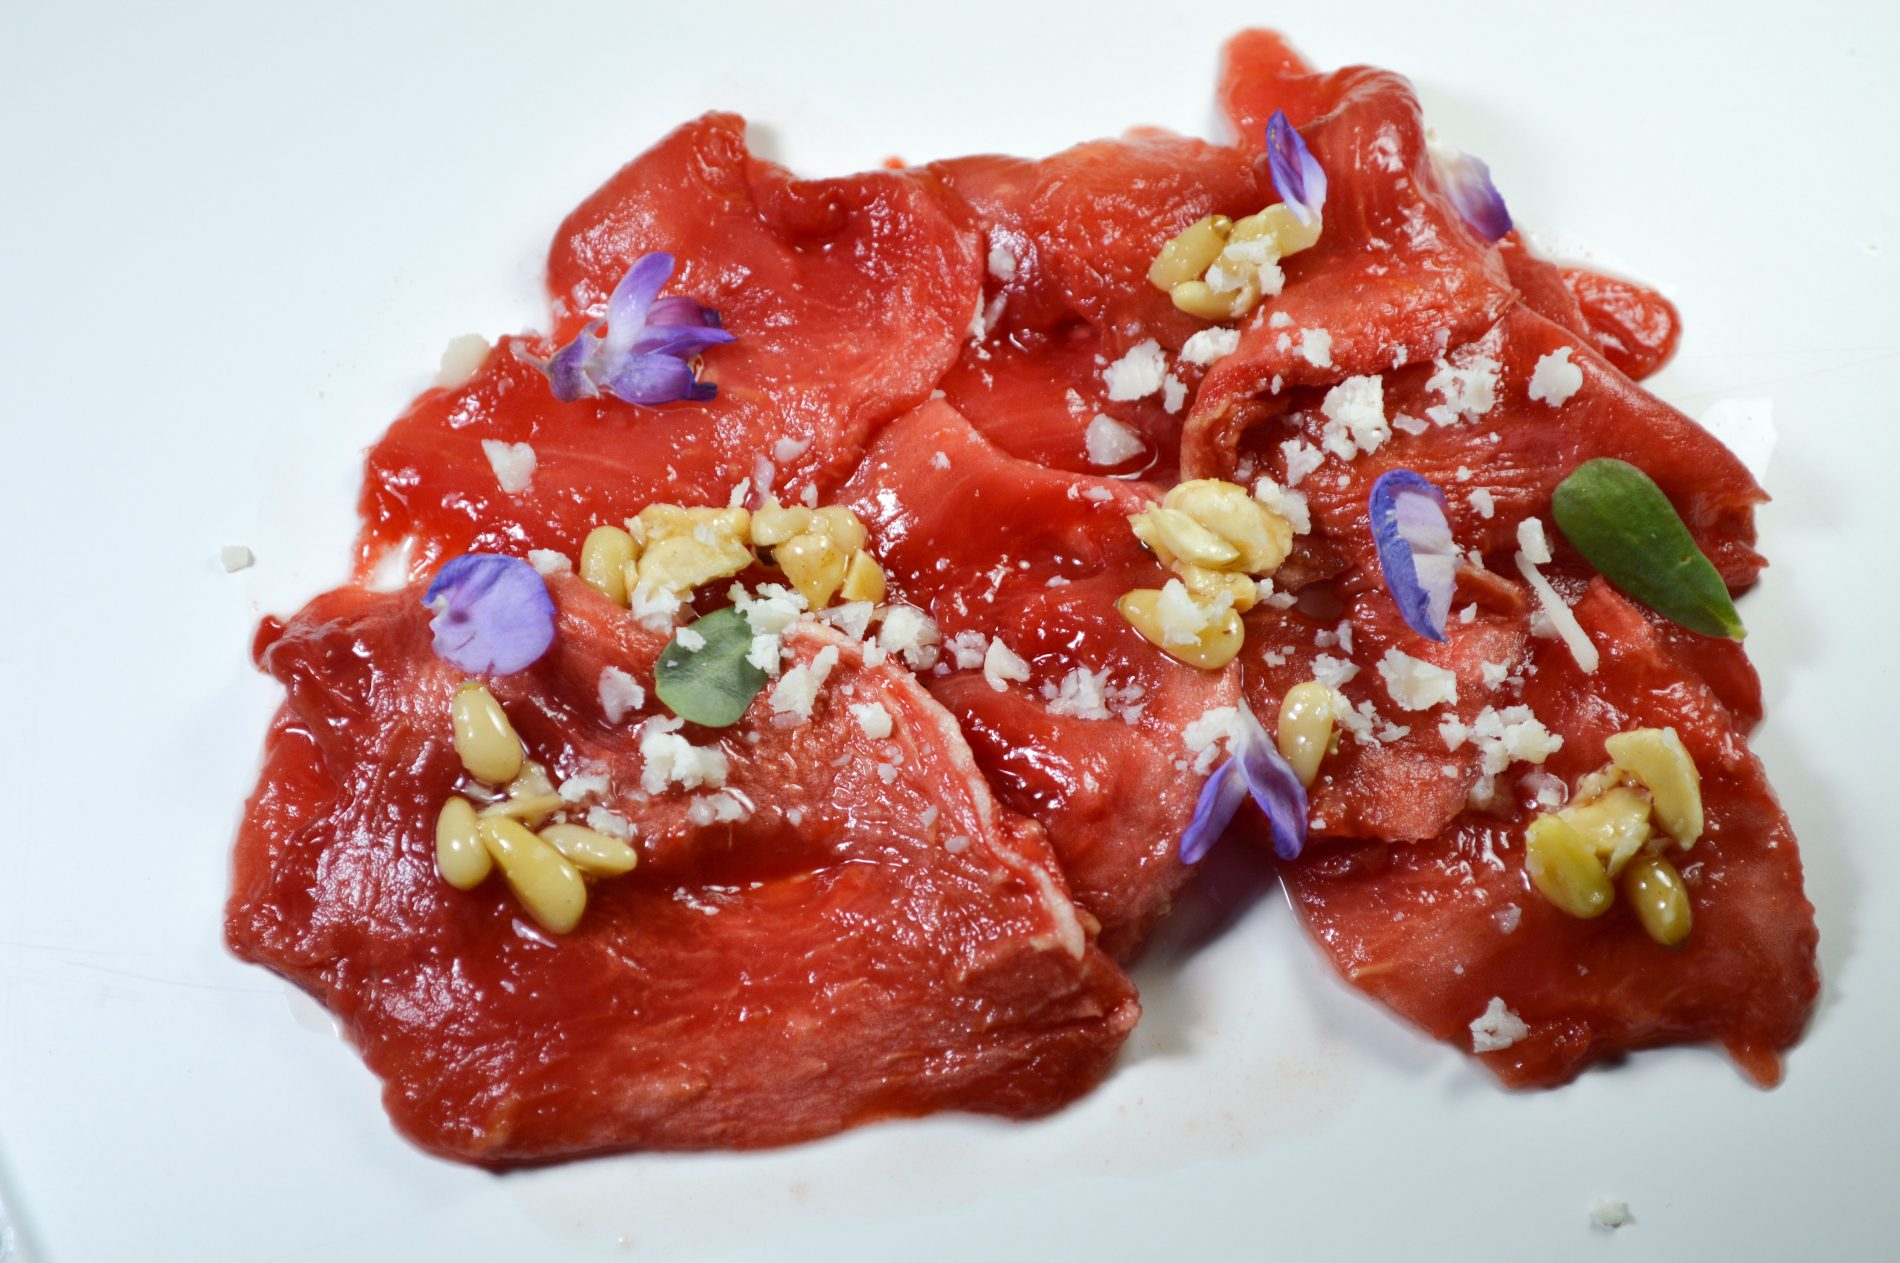 Dehydrated and roasted watermelon carpaccio.